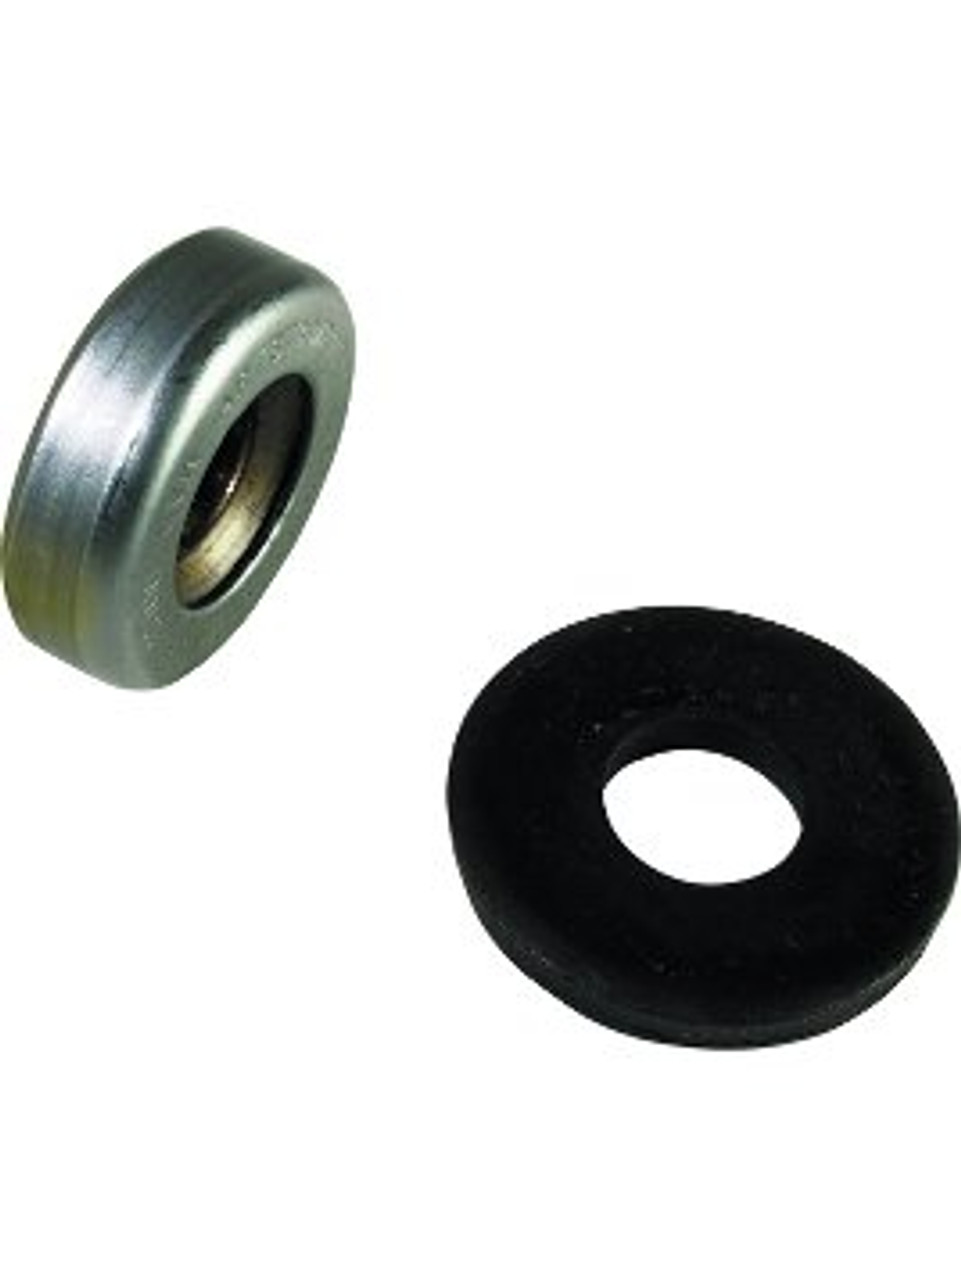 500223 --- Top Bearing for BULLDOG Jacks